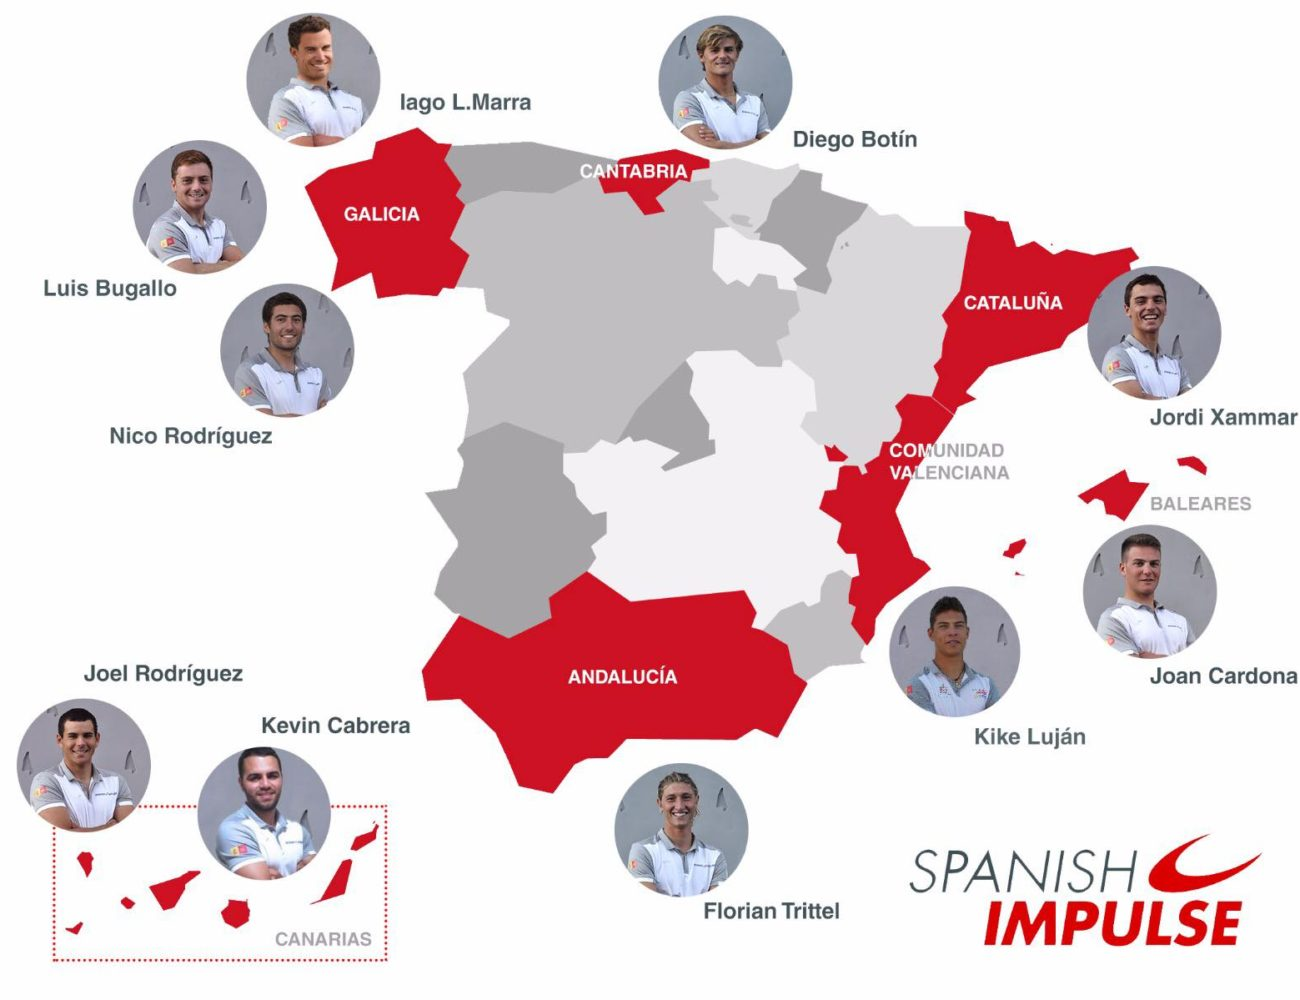 mapa españa spanish impulse